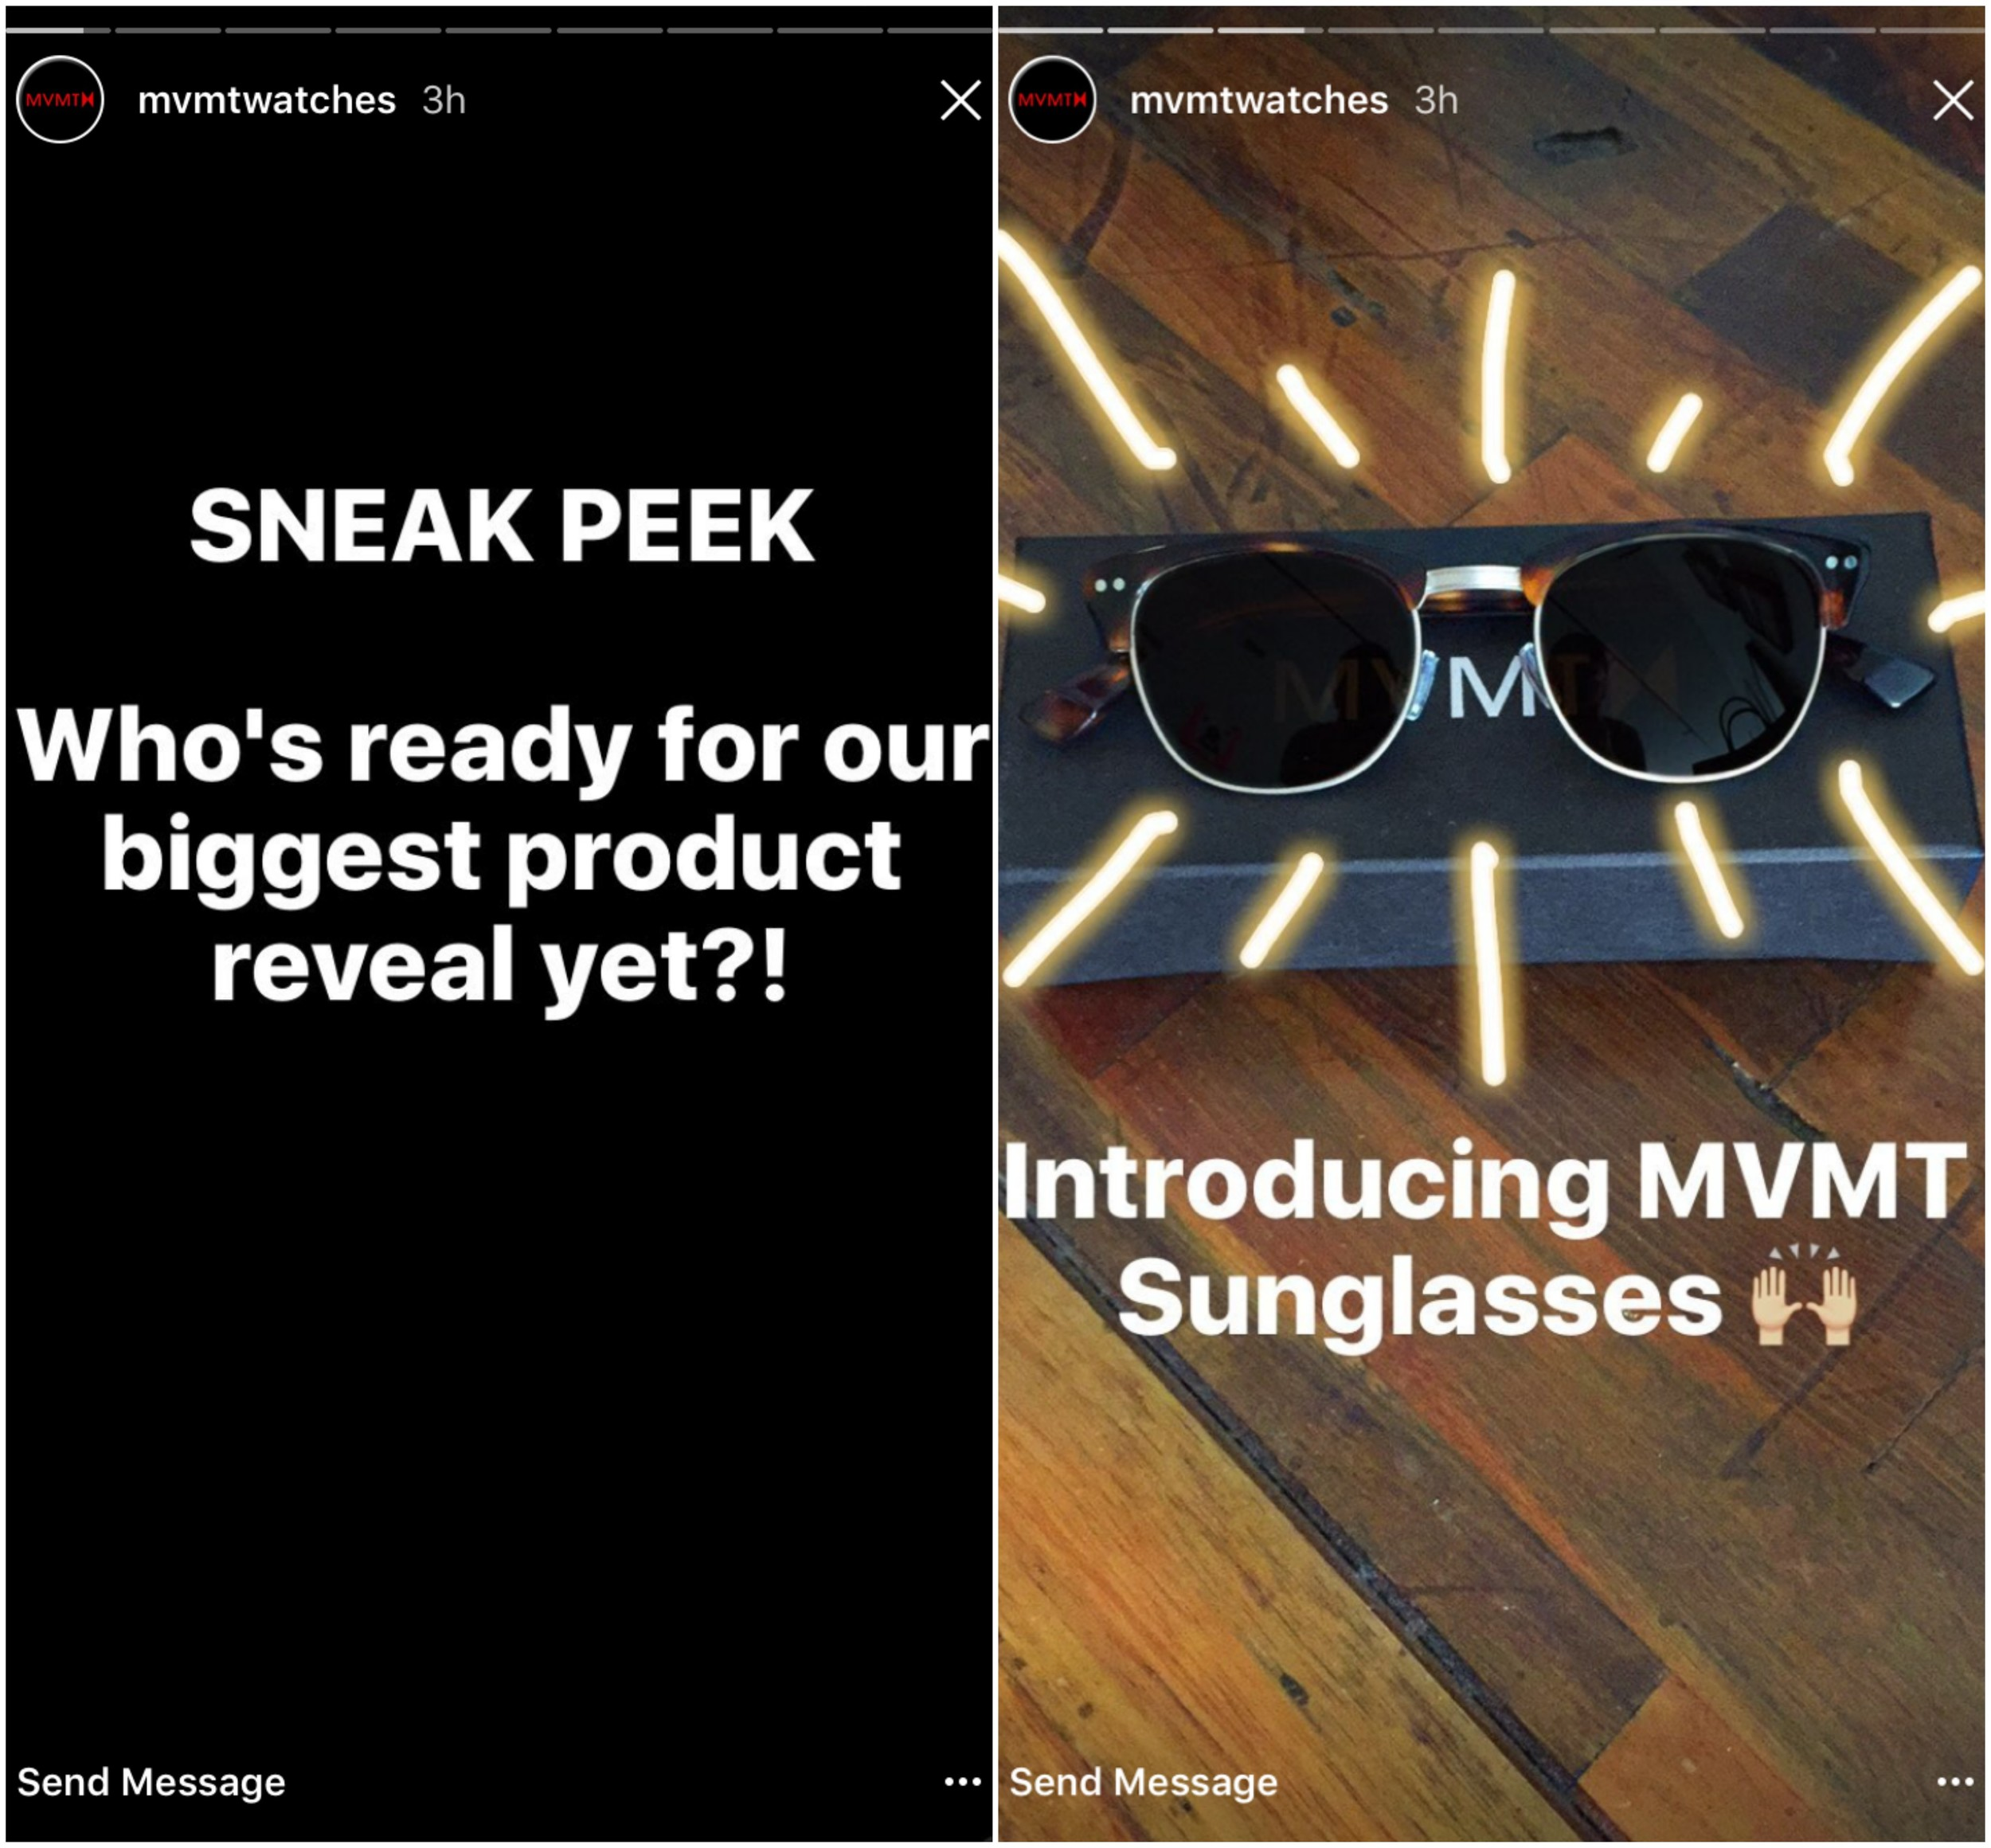 5 Unique Ways Brands are Using Instagram Stories | Social Media Today